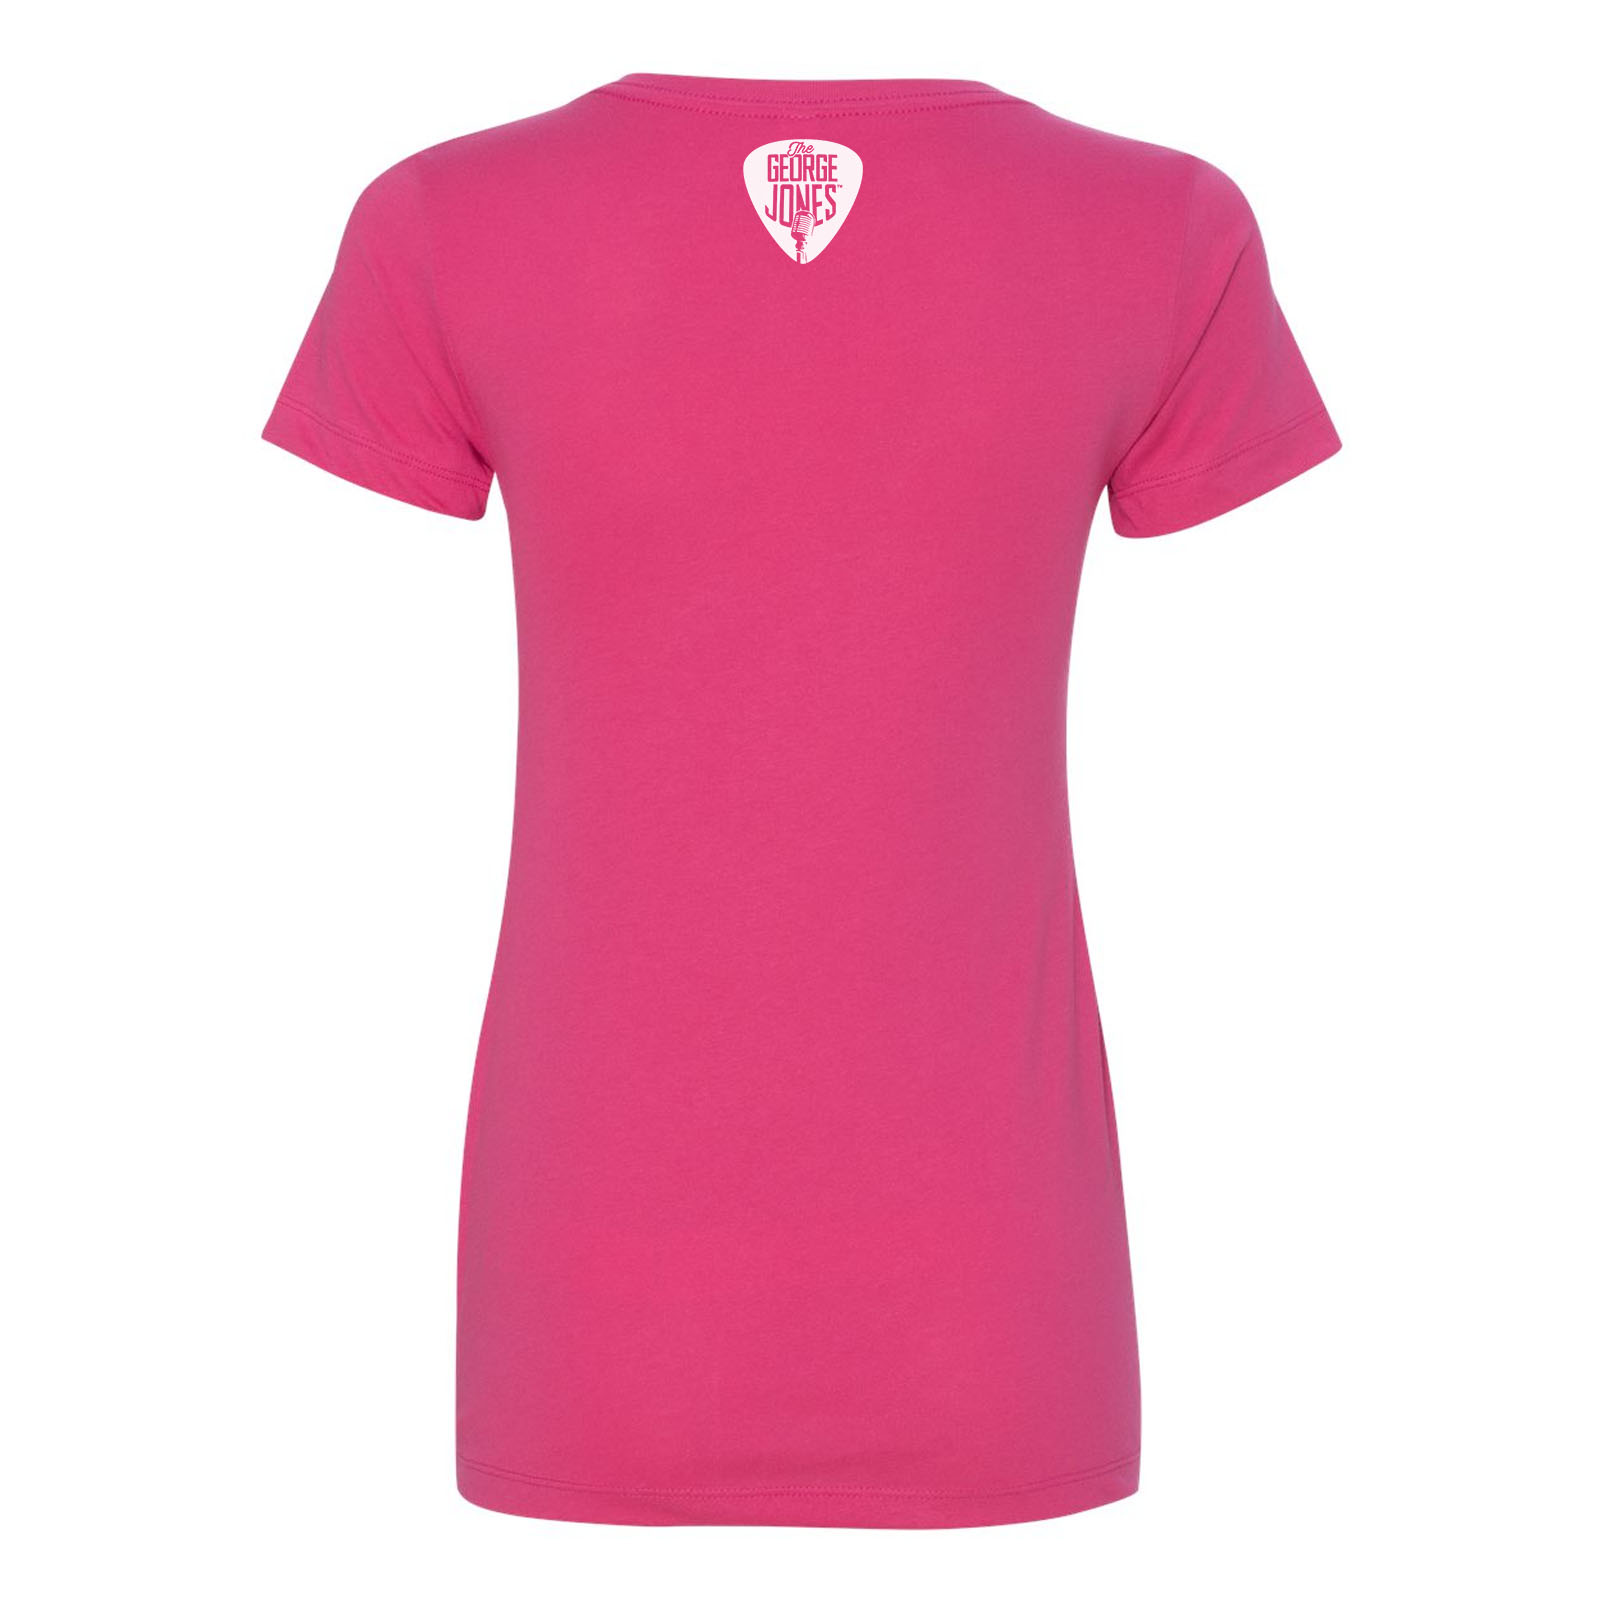 George Jones $2 Pistol Ladies' V-Neck - Pink